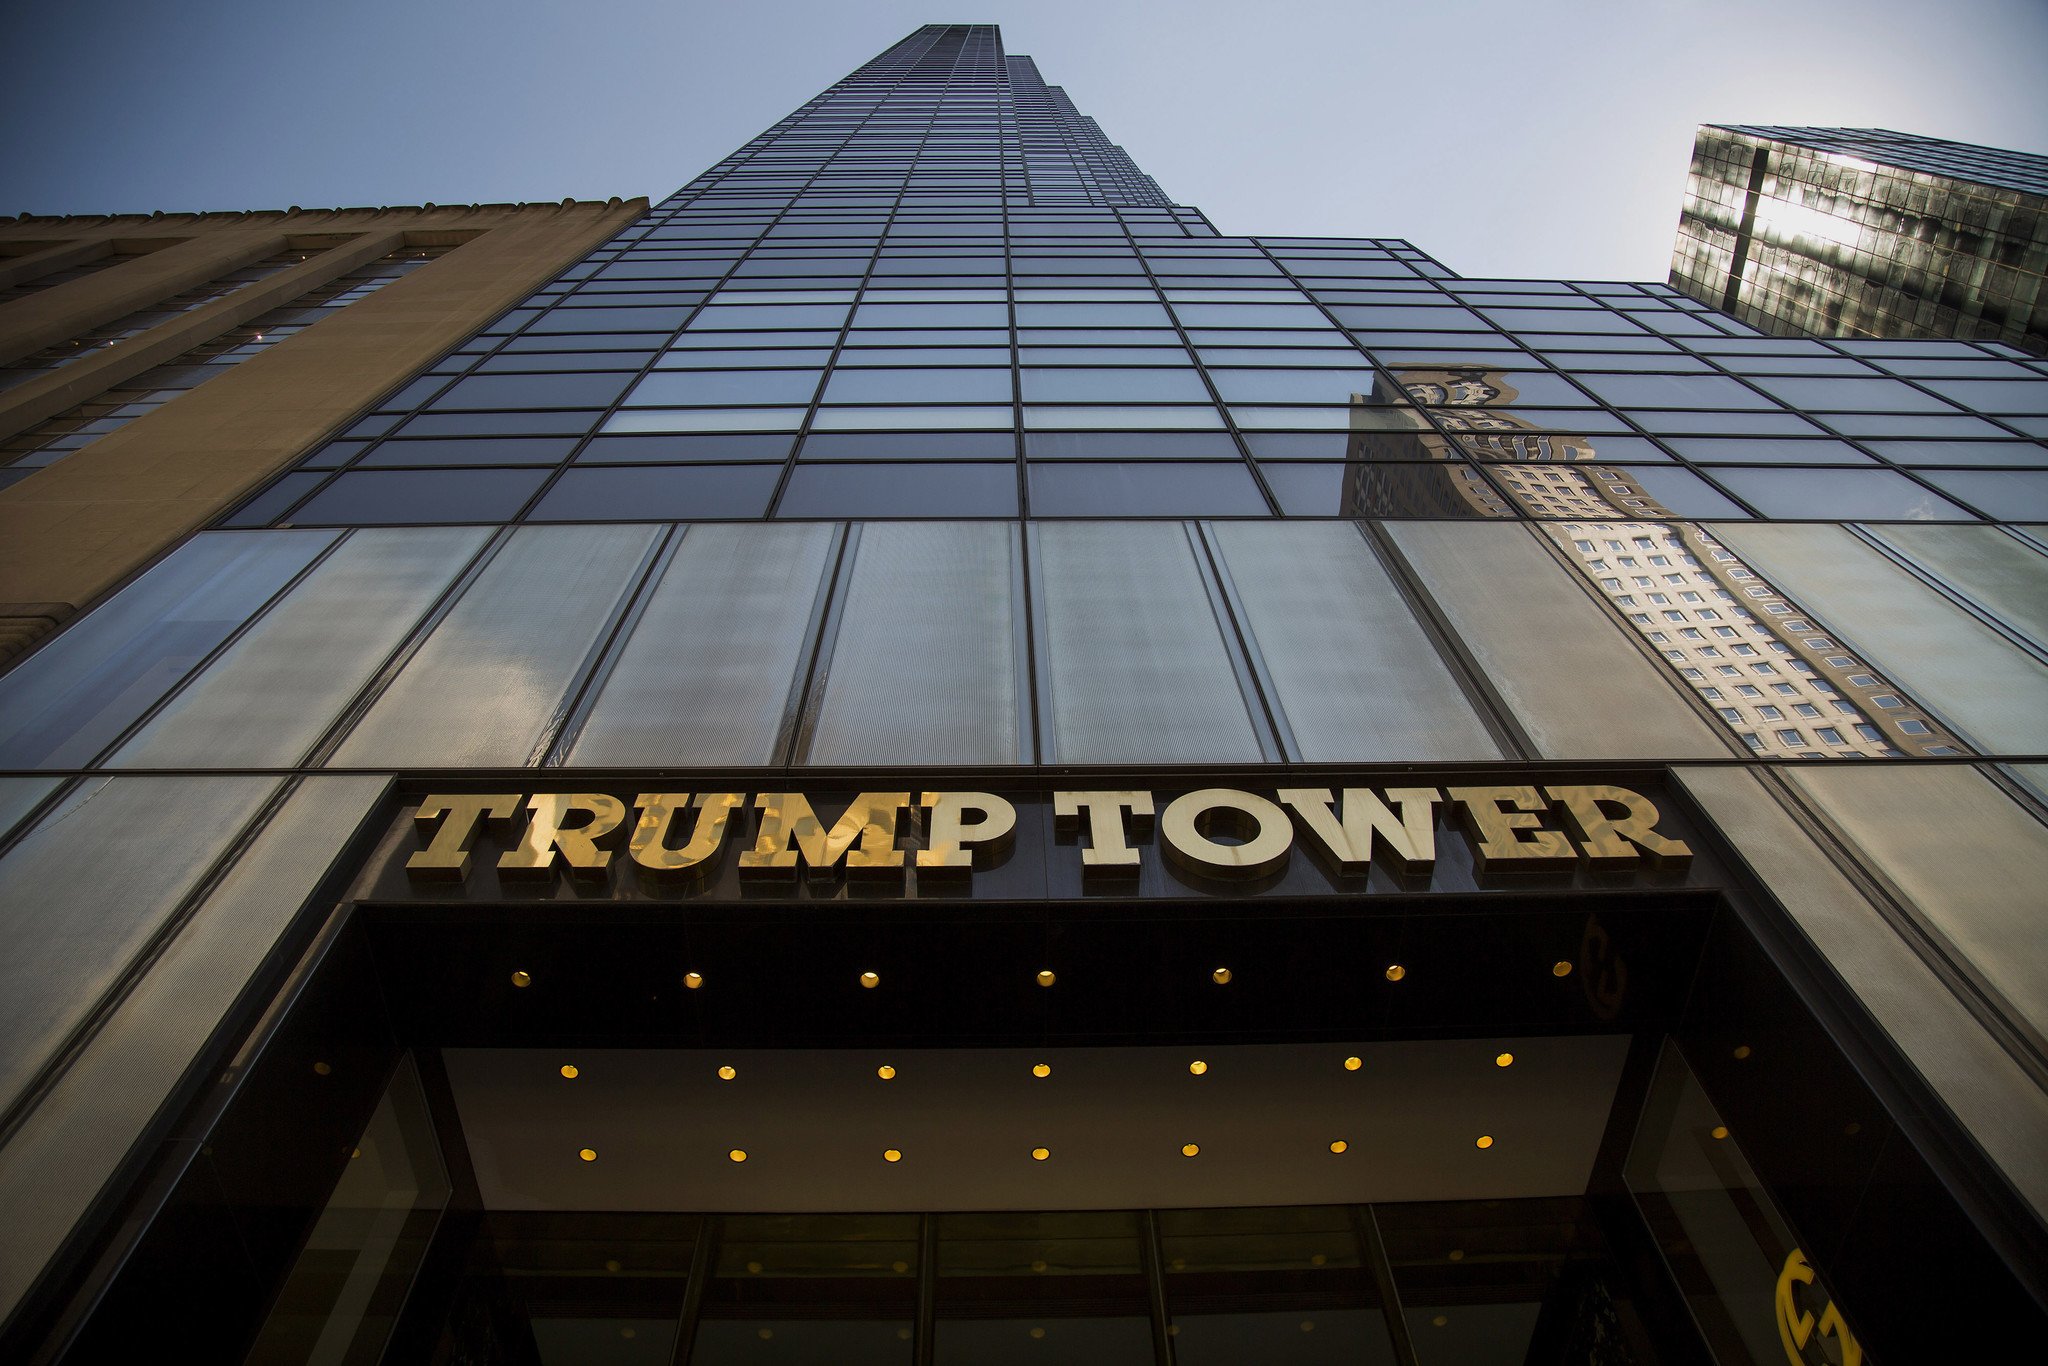 https://www.trbimg.com/img-589a9c73/turbine/ct-department-of-defense-rent-space-trump-tower-20170207